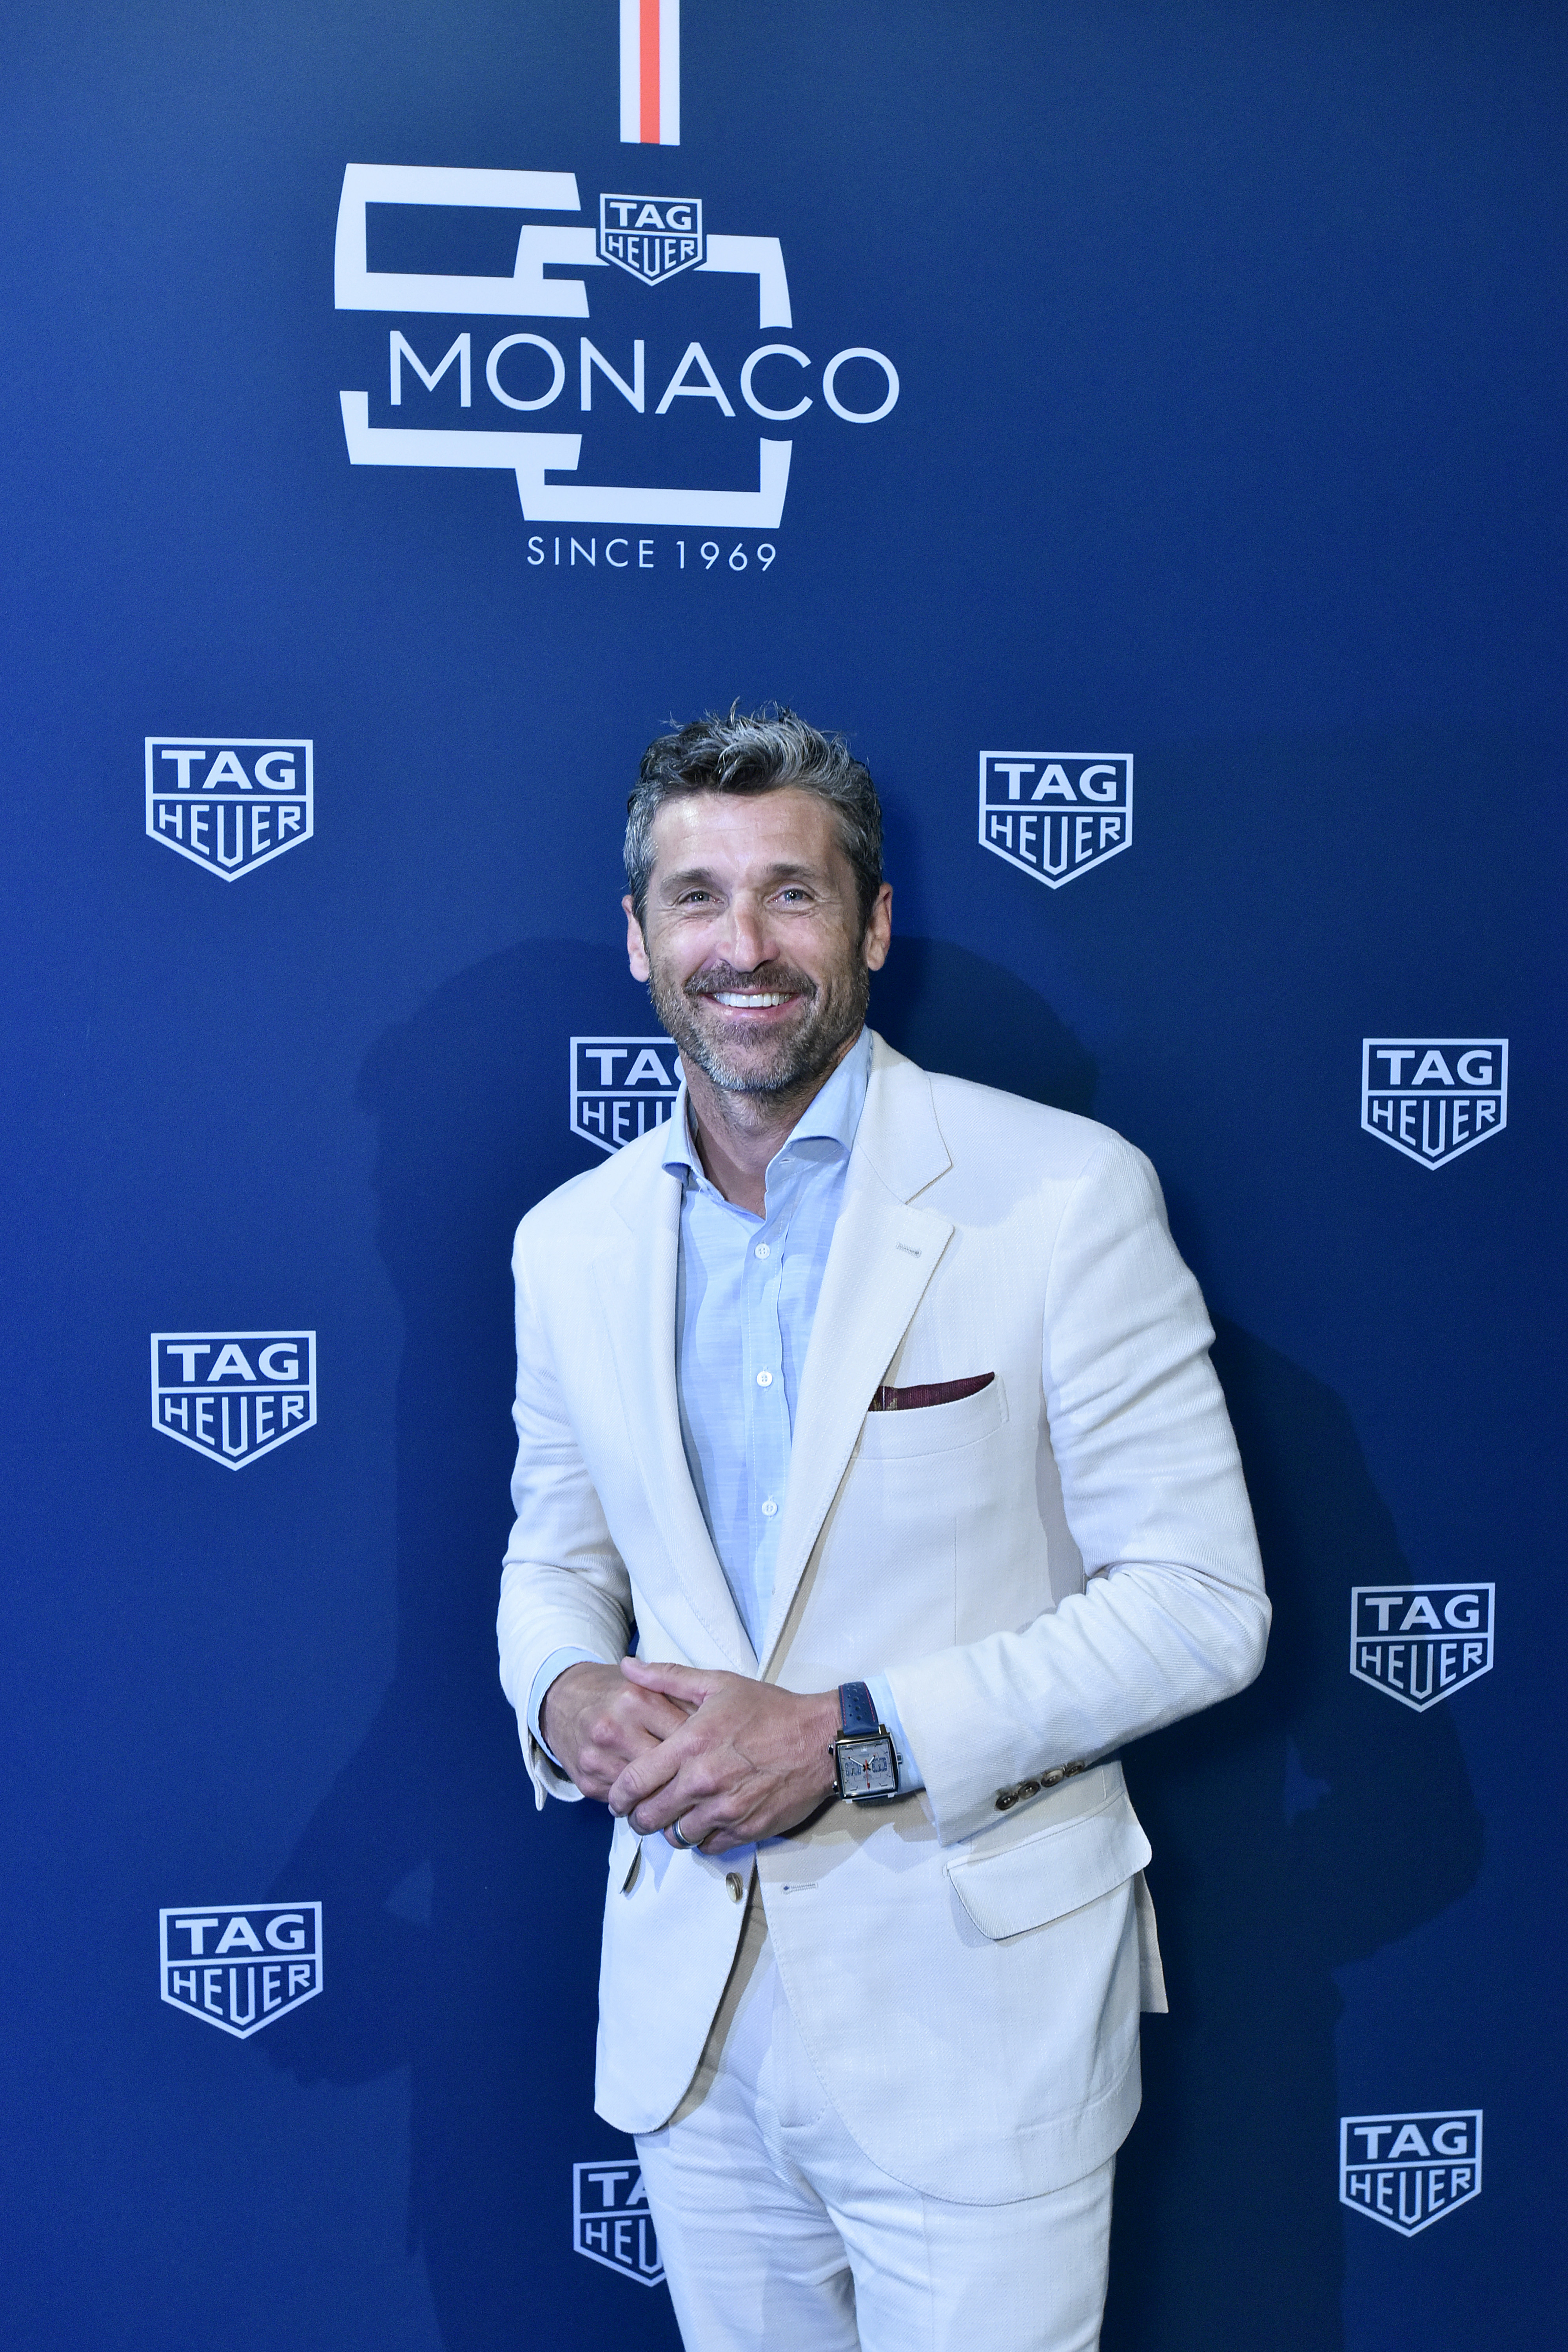 NEW YORK, NEW YORK - JULY 10: Patrick Dempsey attends a TAG Heuer celebration of 50 years of the iconic Monaco Timepiece with brand ambassador Patrick Dempsey on July 10, 2019 in New York City. (Photo by Eugene Gologursky/Getty Images for TAG Heuer)